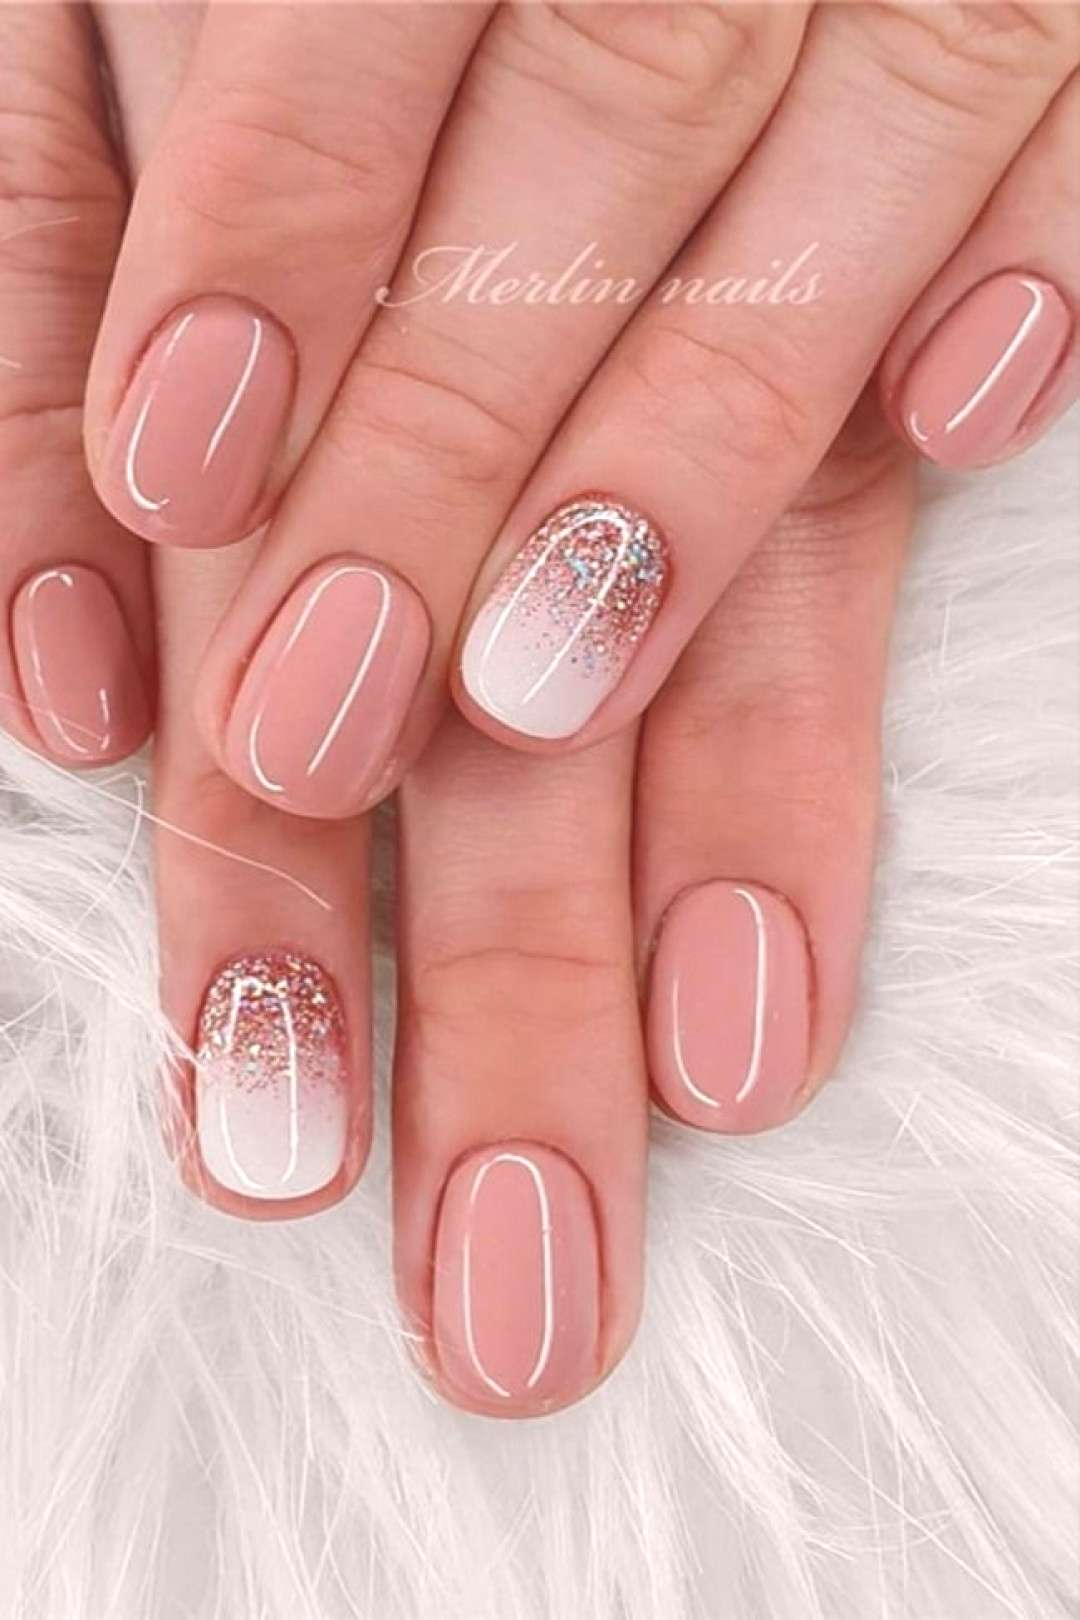 40 Newest Short Nail Art Design Don't Miss In spring And summer -  La meilleure image selon vos env